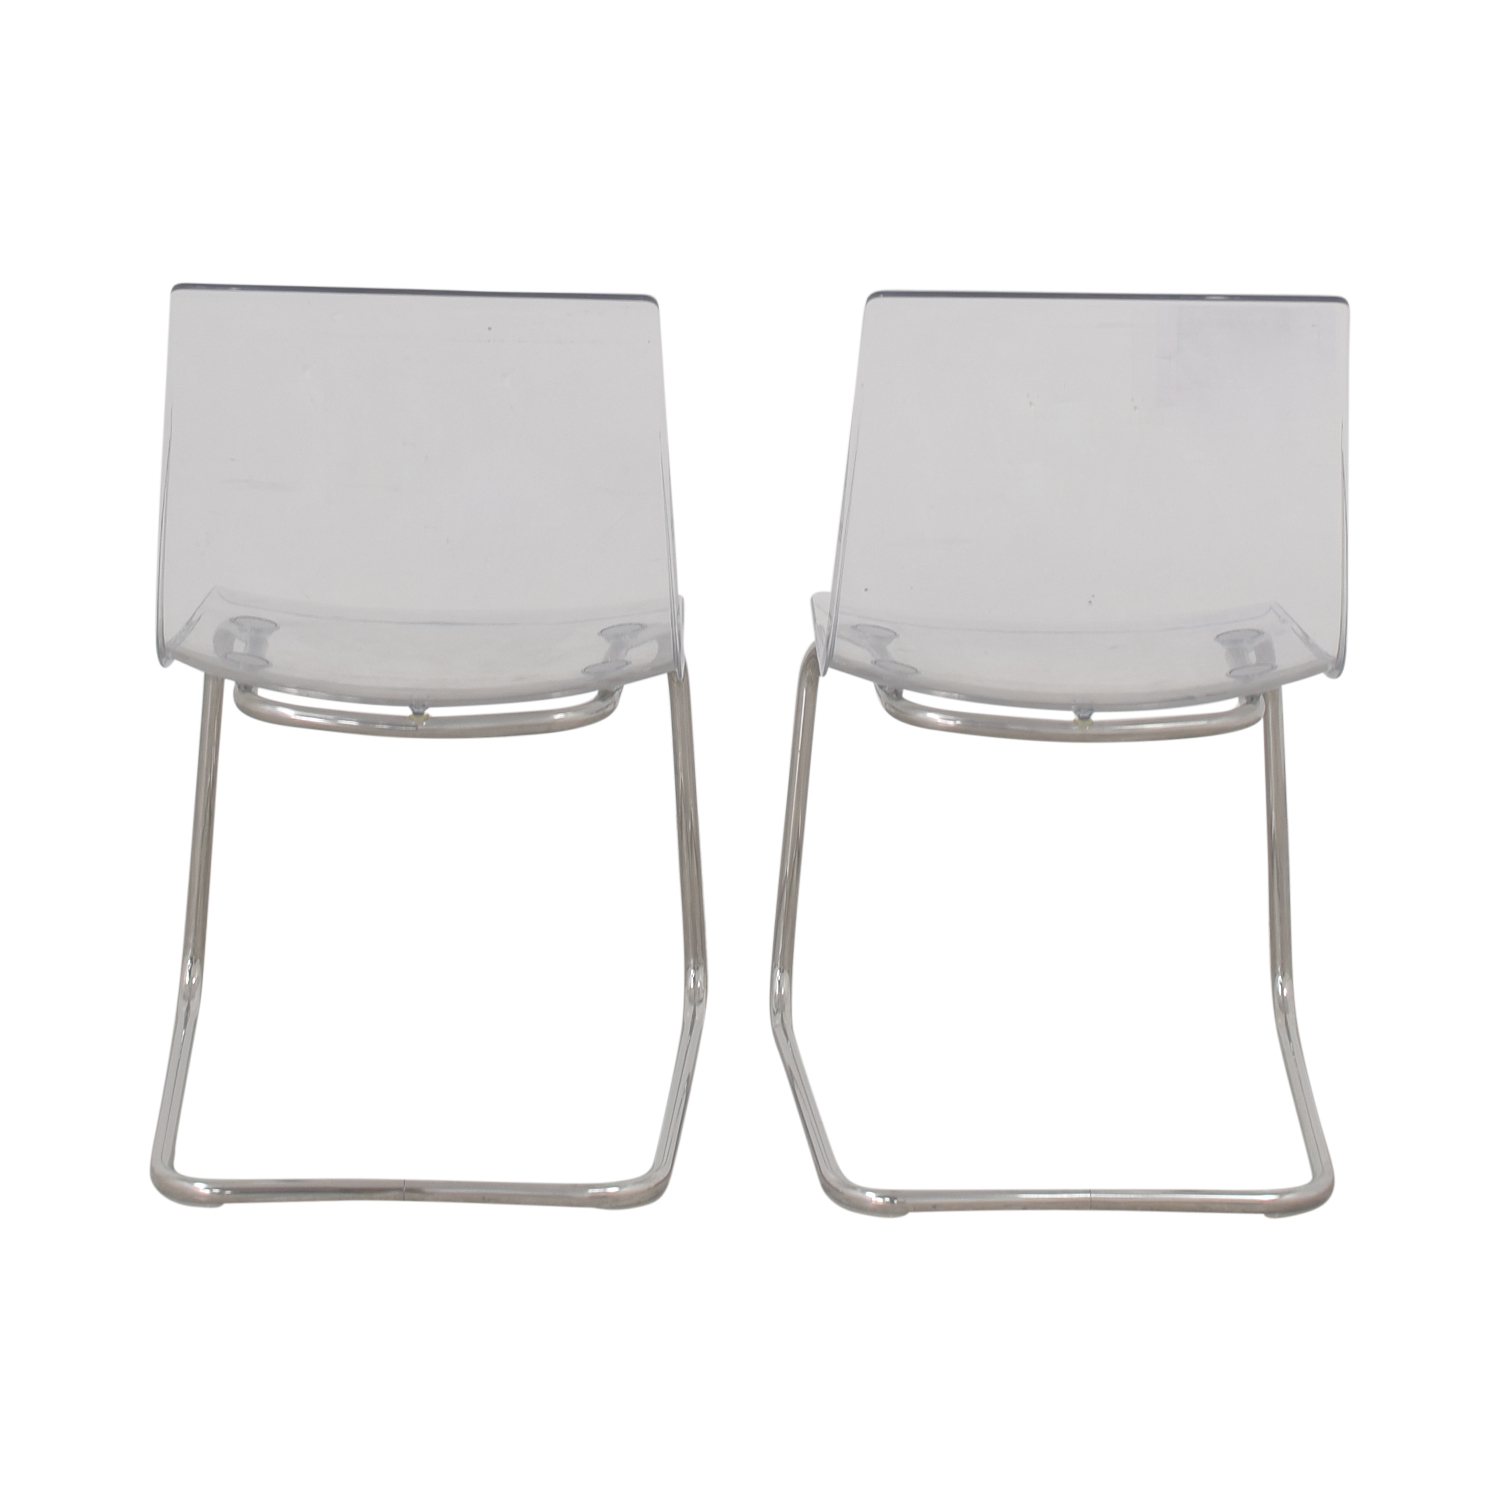 IKEA IKEA Tobias Chrome and Lucite Chairs coupon